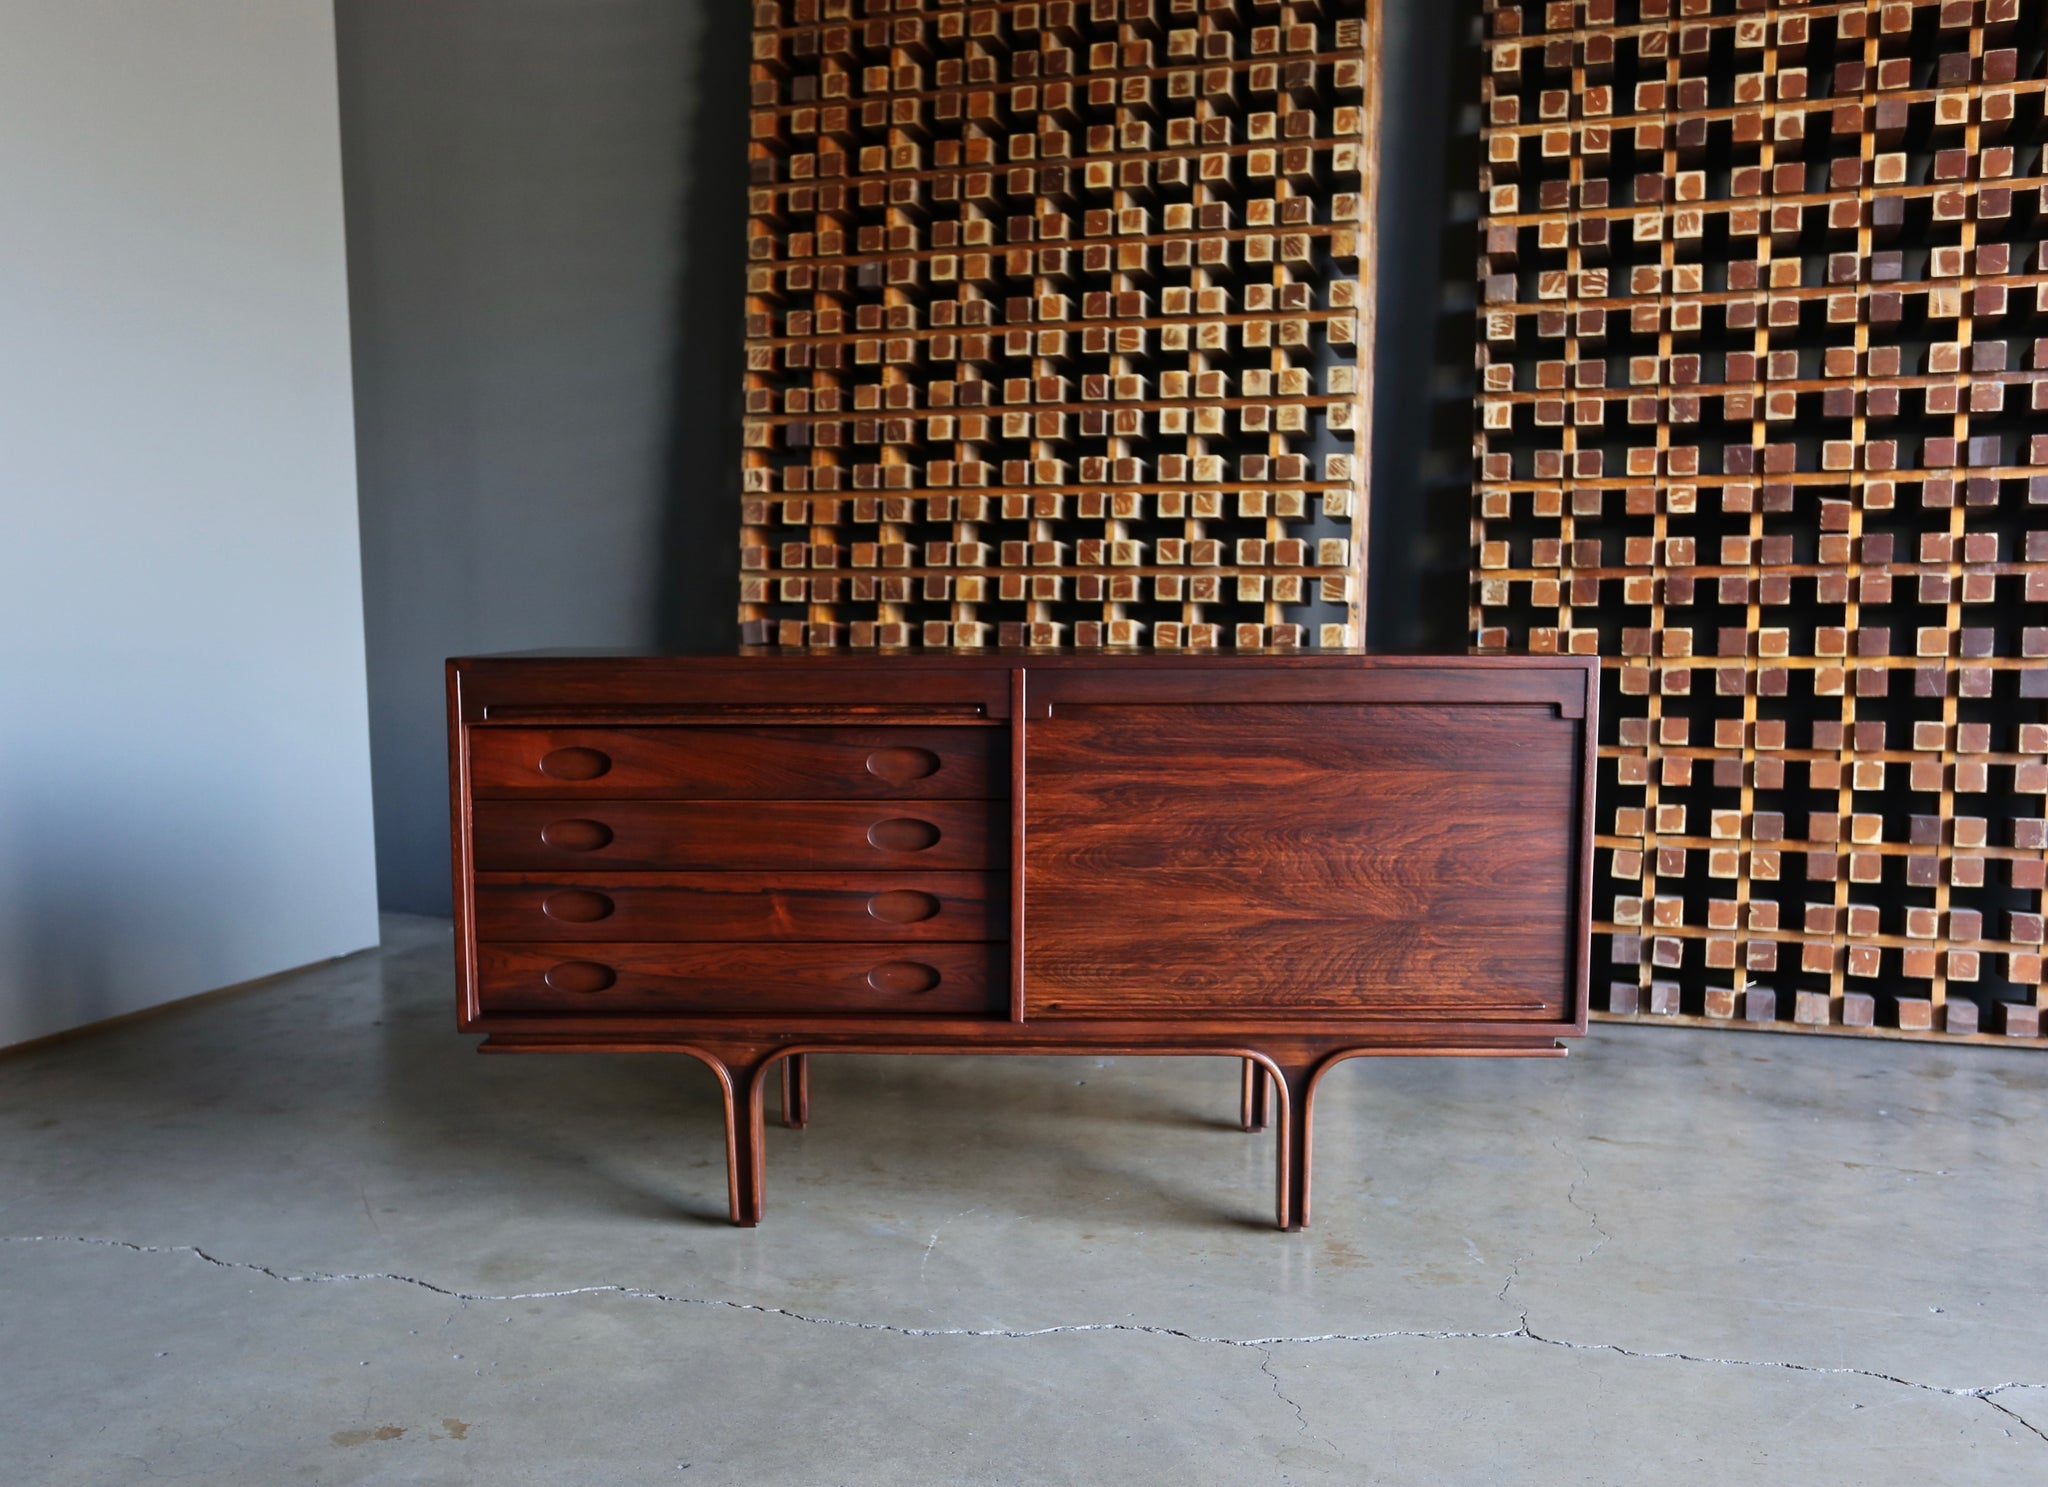 Gianfranco Frattini Tambour Door Jacaranda Credenza for Bernini, circa 1957